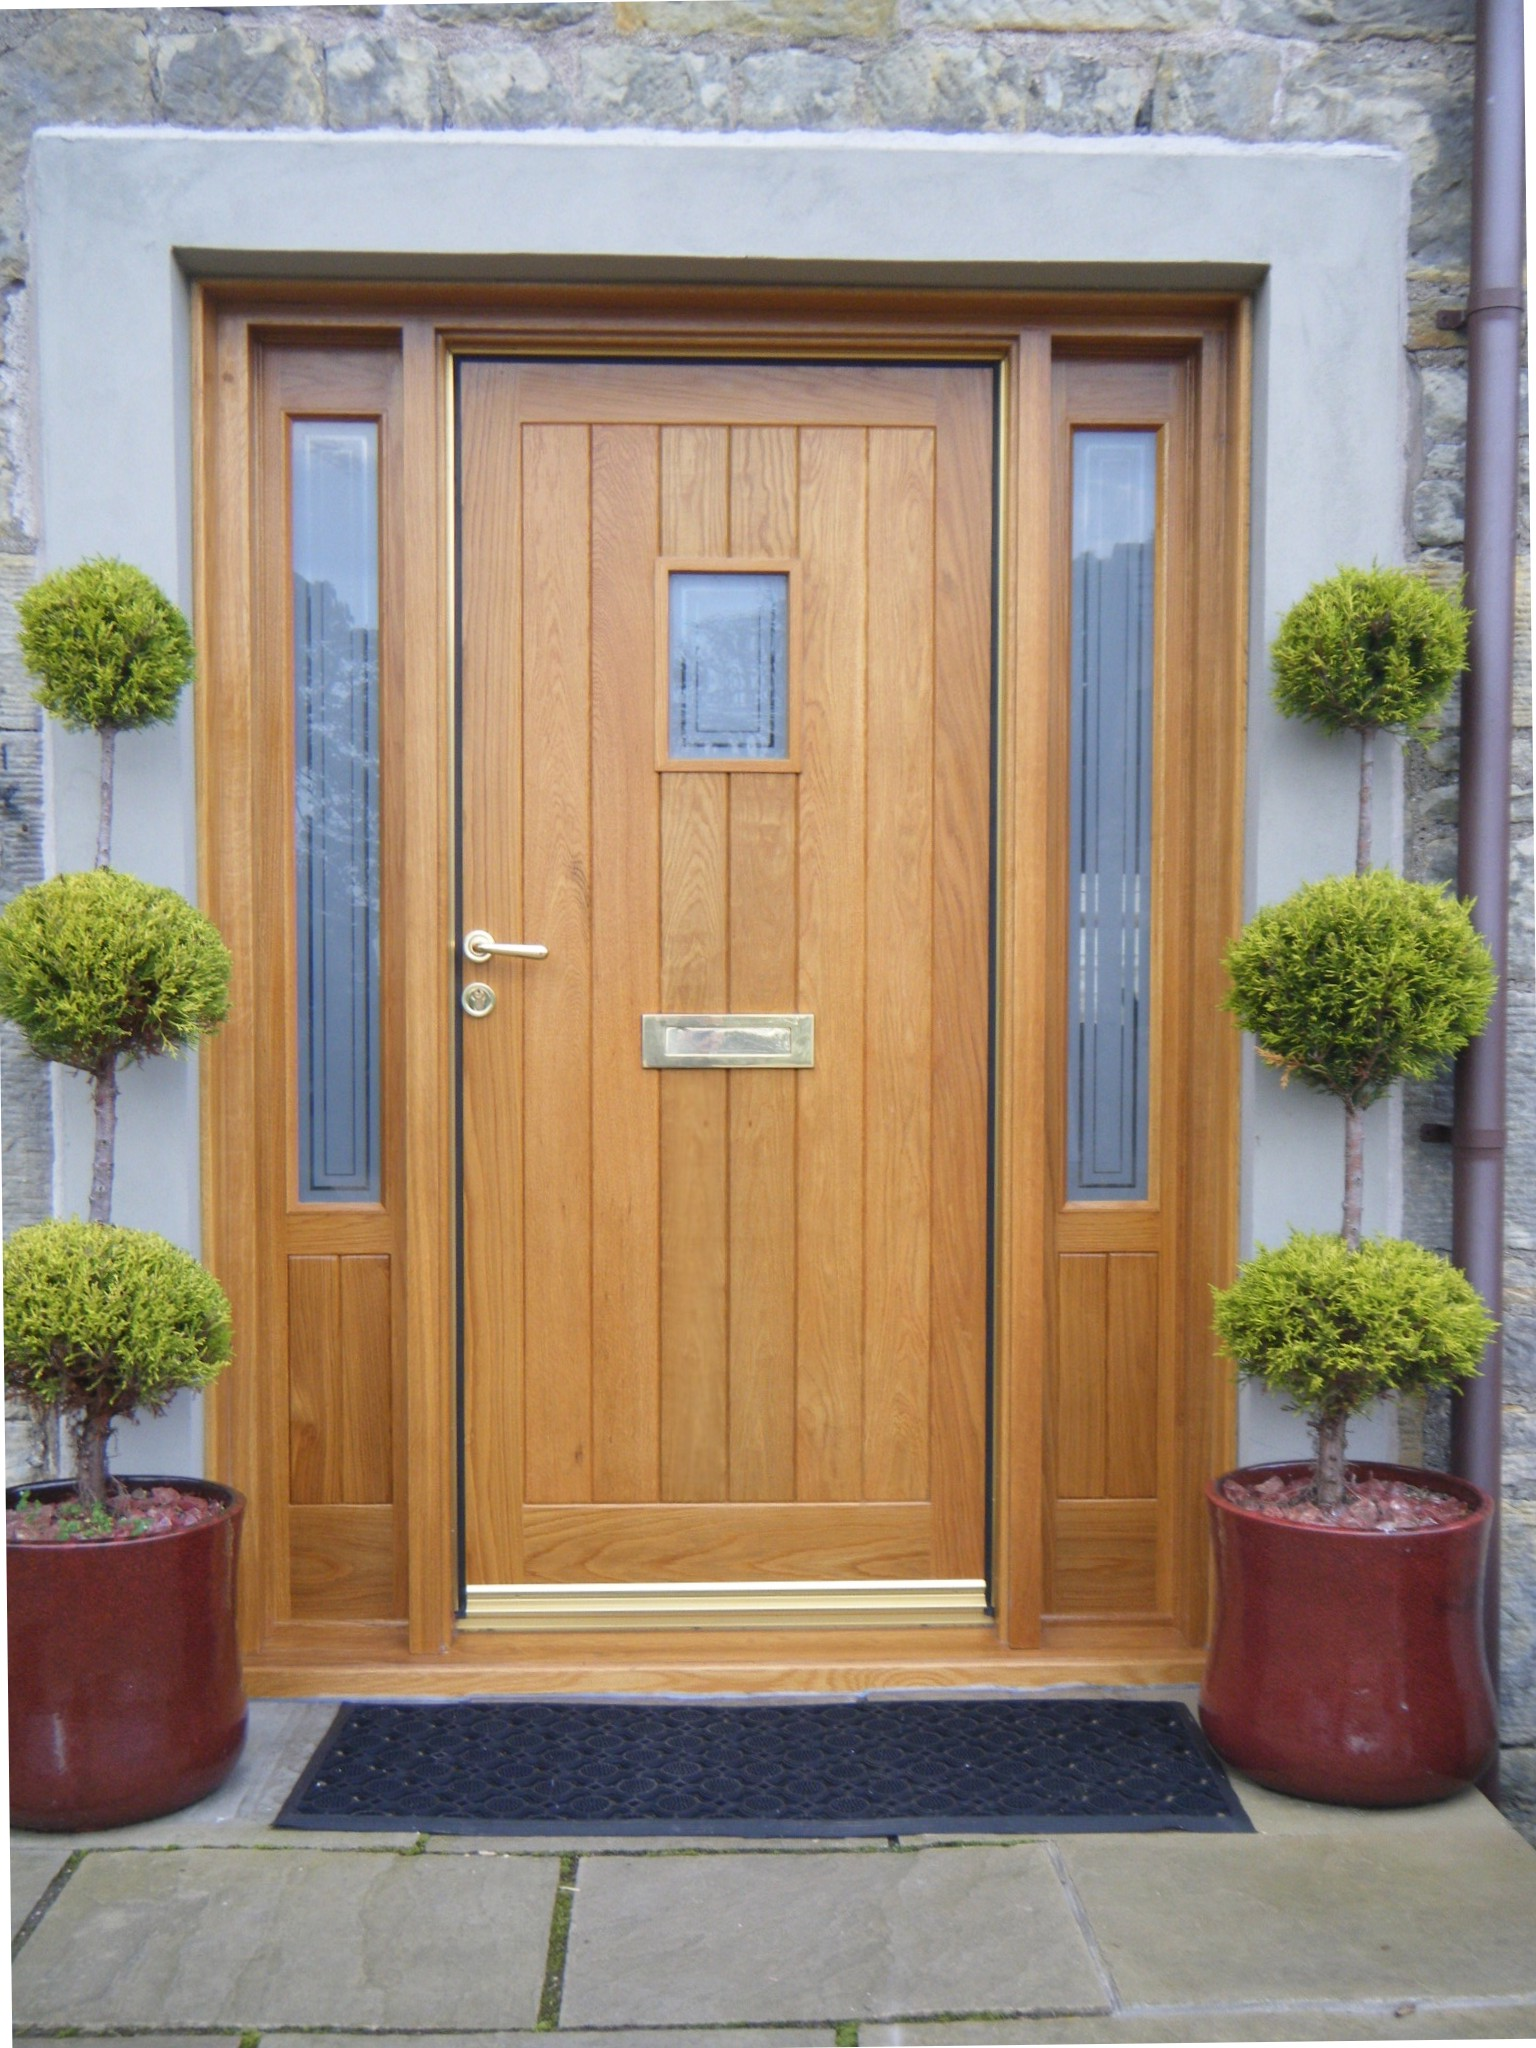 Luxury solid wood front door with glass for Exterior wooden door designs